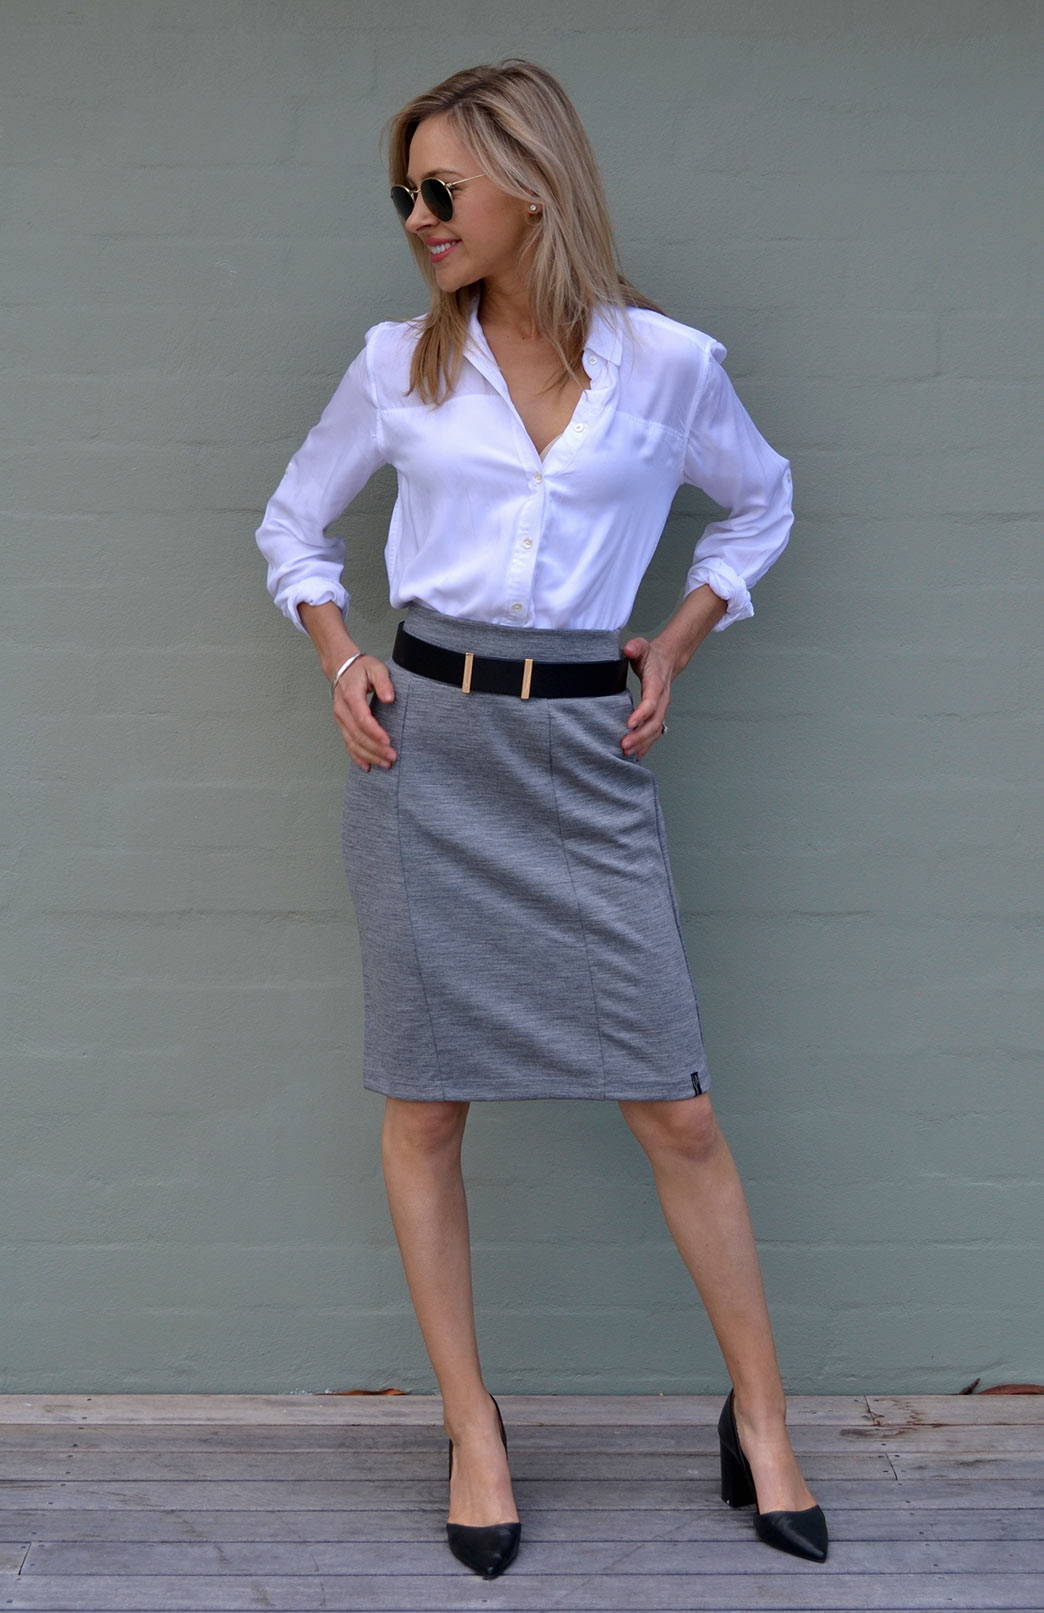 Straight Skirt - Women's Black Straight Office Wool Skirt - Smitten Merino Tasmania Australia